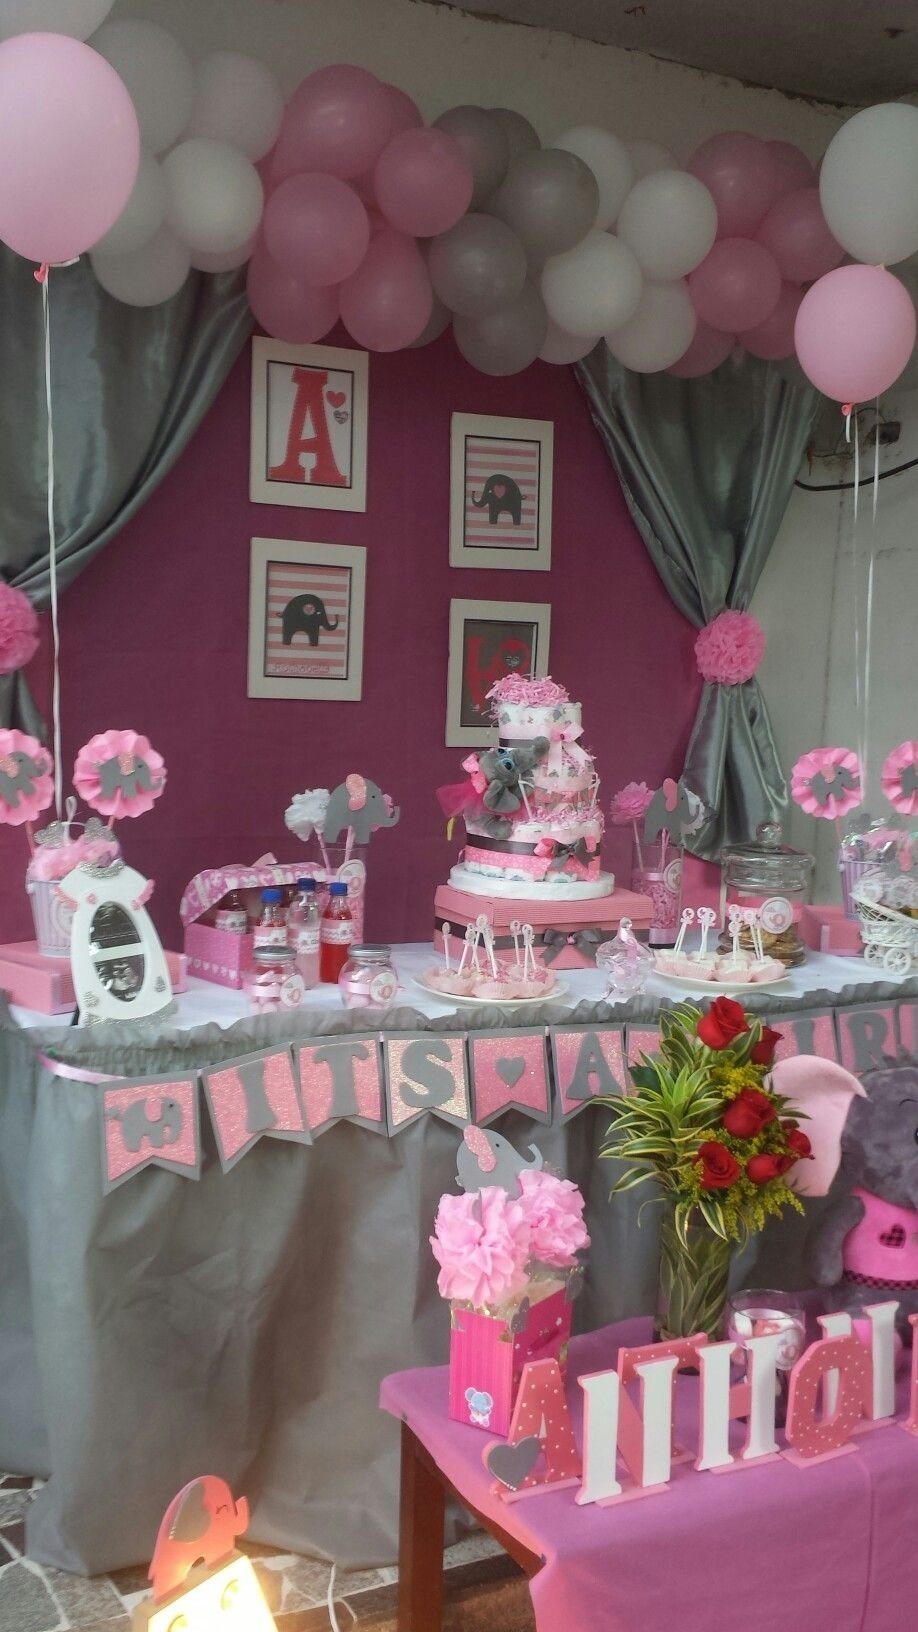 10 Famous Baby Shower Theme Ideas For A Girl elephant pink and grey baby shower pinteres 1 2020